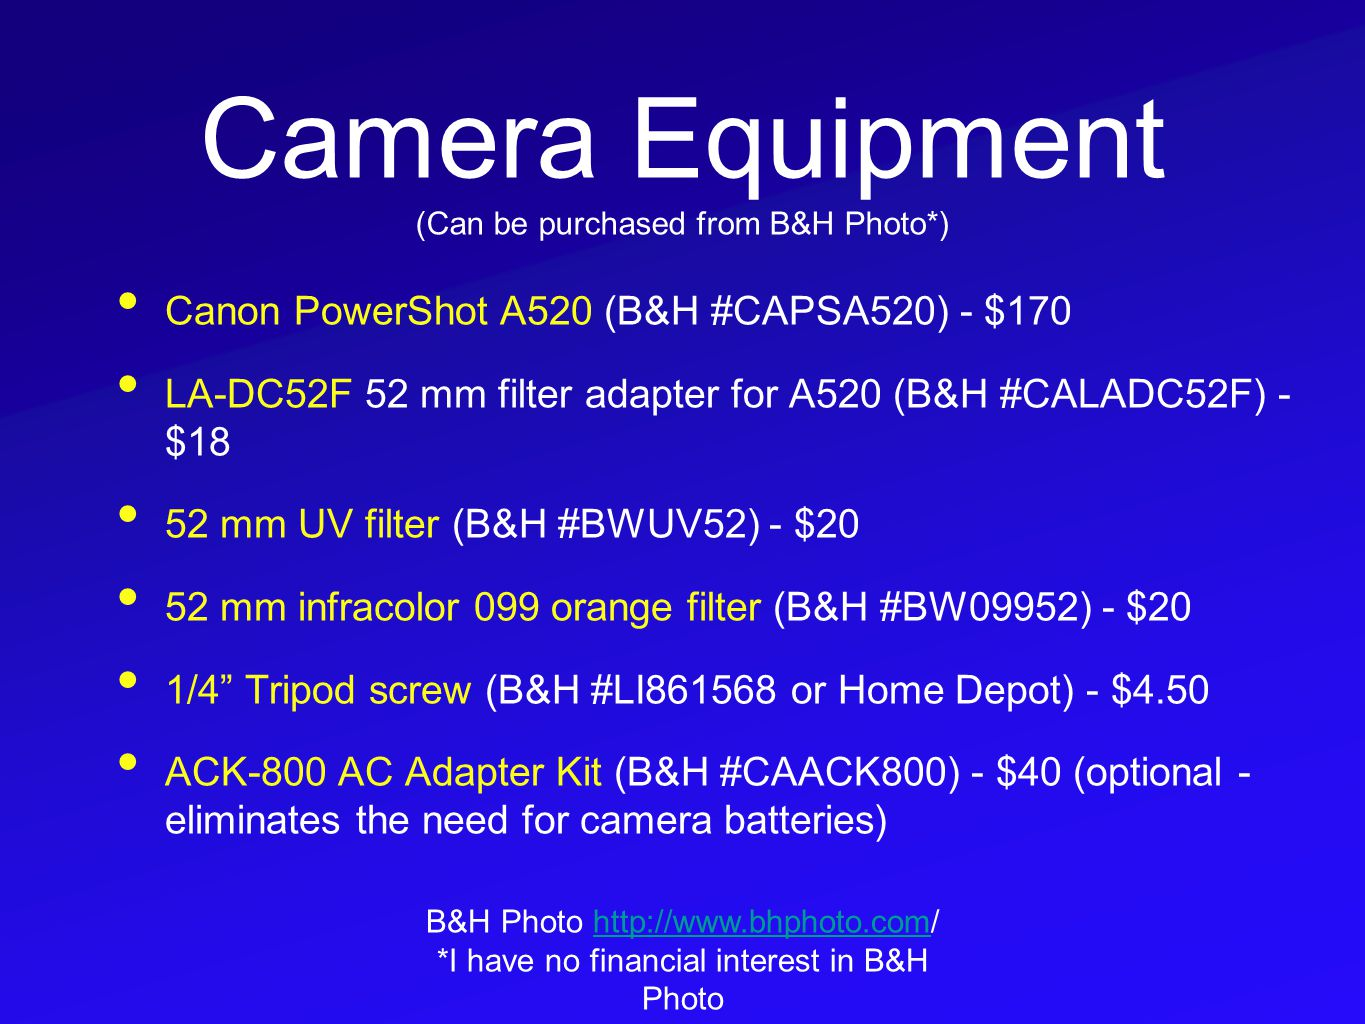 Camera Equipment (Can be purchased from B&H Photo*) Canon PowerShot A520 (B&H #CAPSA520) - $170 LA-DC52F 52 mm filter adapter for A520 (B&H #CALADC52F) - $18 52 mm UV filter (B&H #BWUV52) - $20 52 mm infracolor 099 orange filter (B&H #BW09952) - $20 1/4 Tripod screw (B&H #LI861568 or Home Depot) - $4.50 ACK-800 AC Adapter Kit (B&H #CAACK800) - $40 (optional - eliminates the need for camera batteries) B&H Photo http://www.bhphoto.com/http://www.bhphoto.com *I have no financial interest in B&H Photo